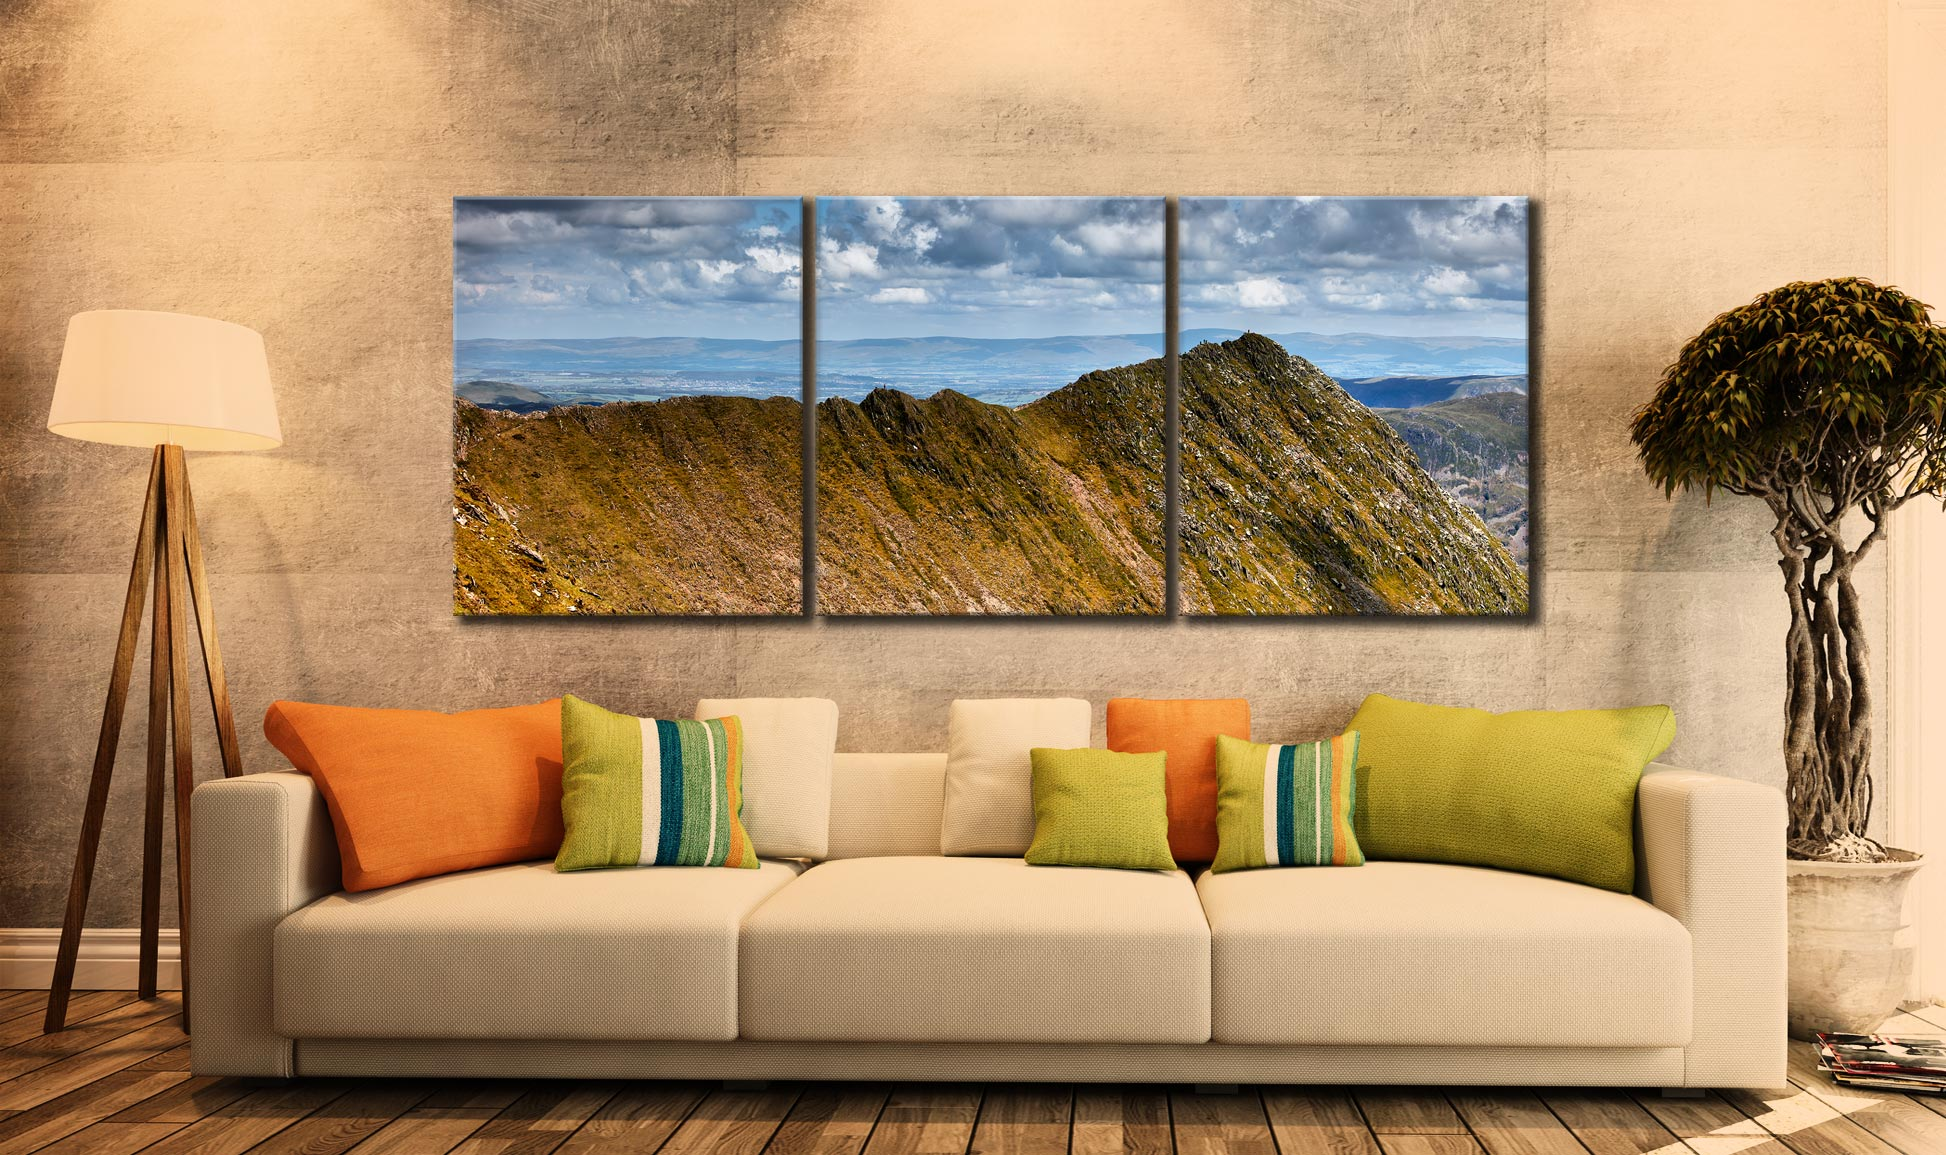 Striding Edge - 3 Panel Canvas on Wall